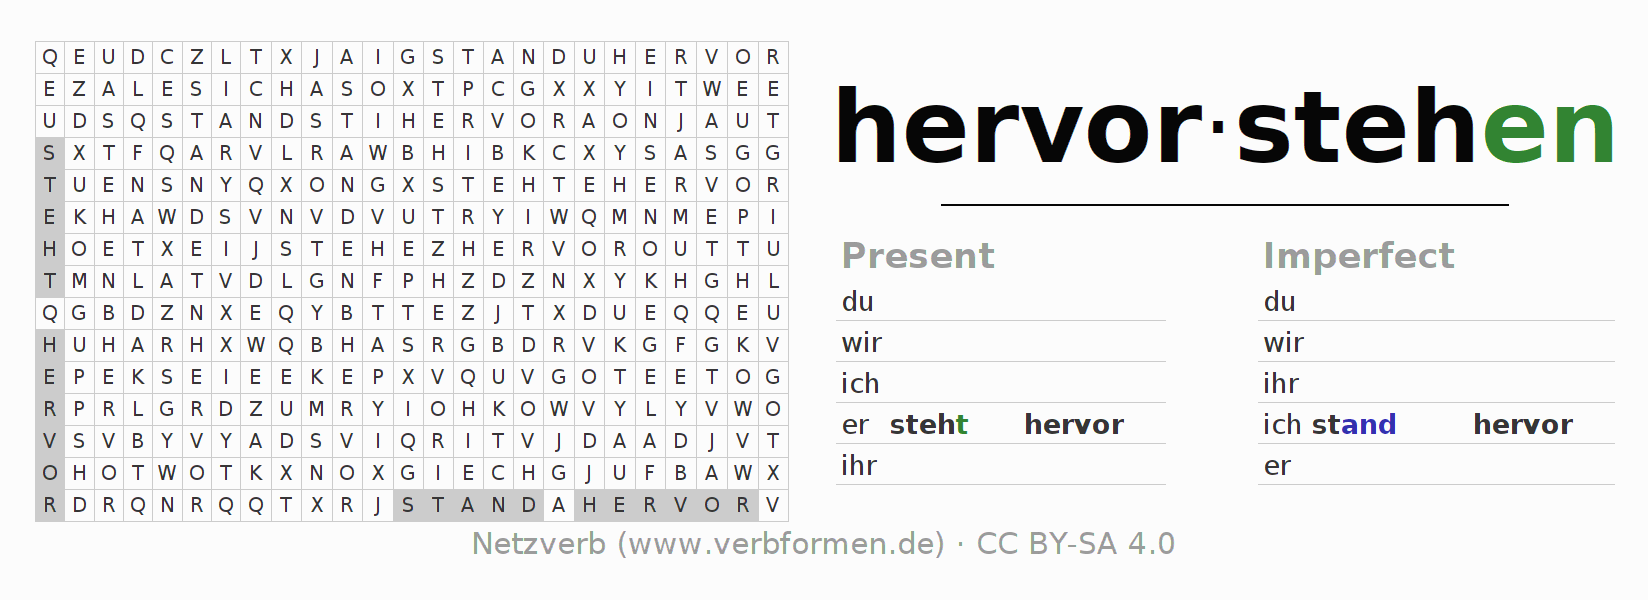 Word search puzzle for the conjugation of the verb hervorstehen (hat)